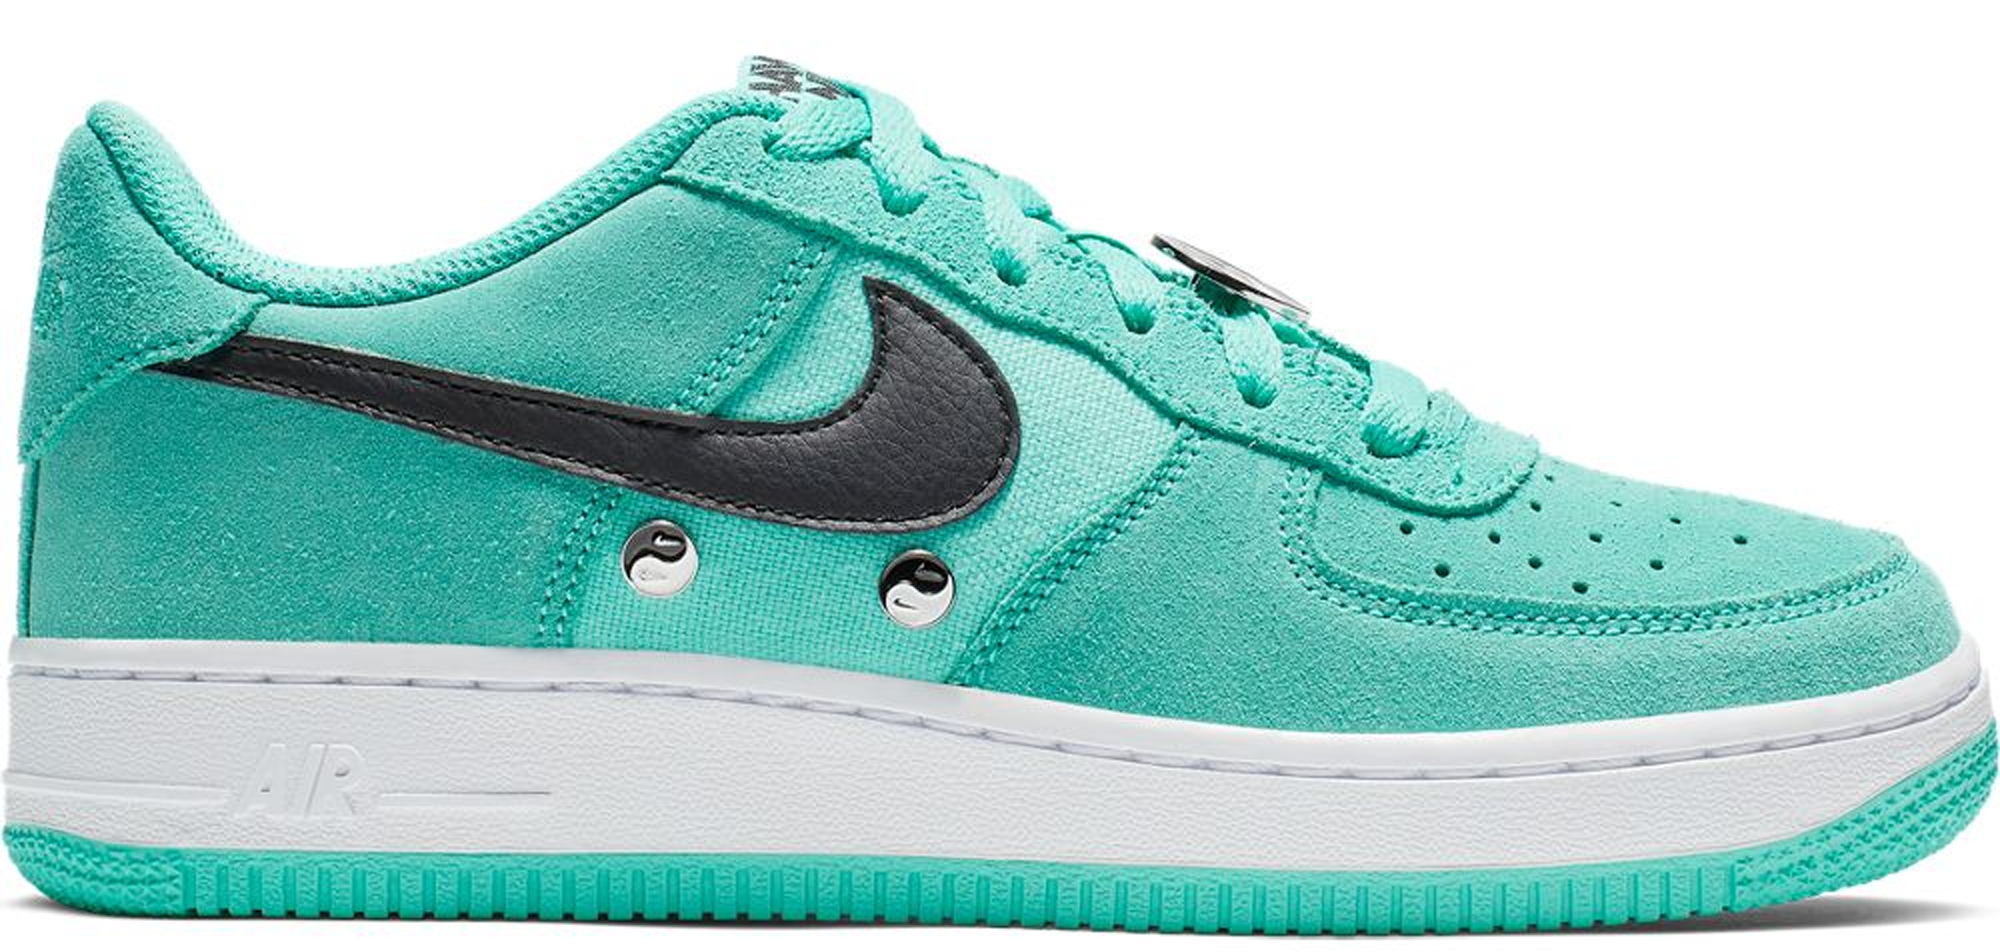 Air Force 1 Low Have a Nike Day Hyper Jade (GS)